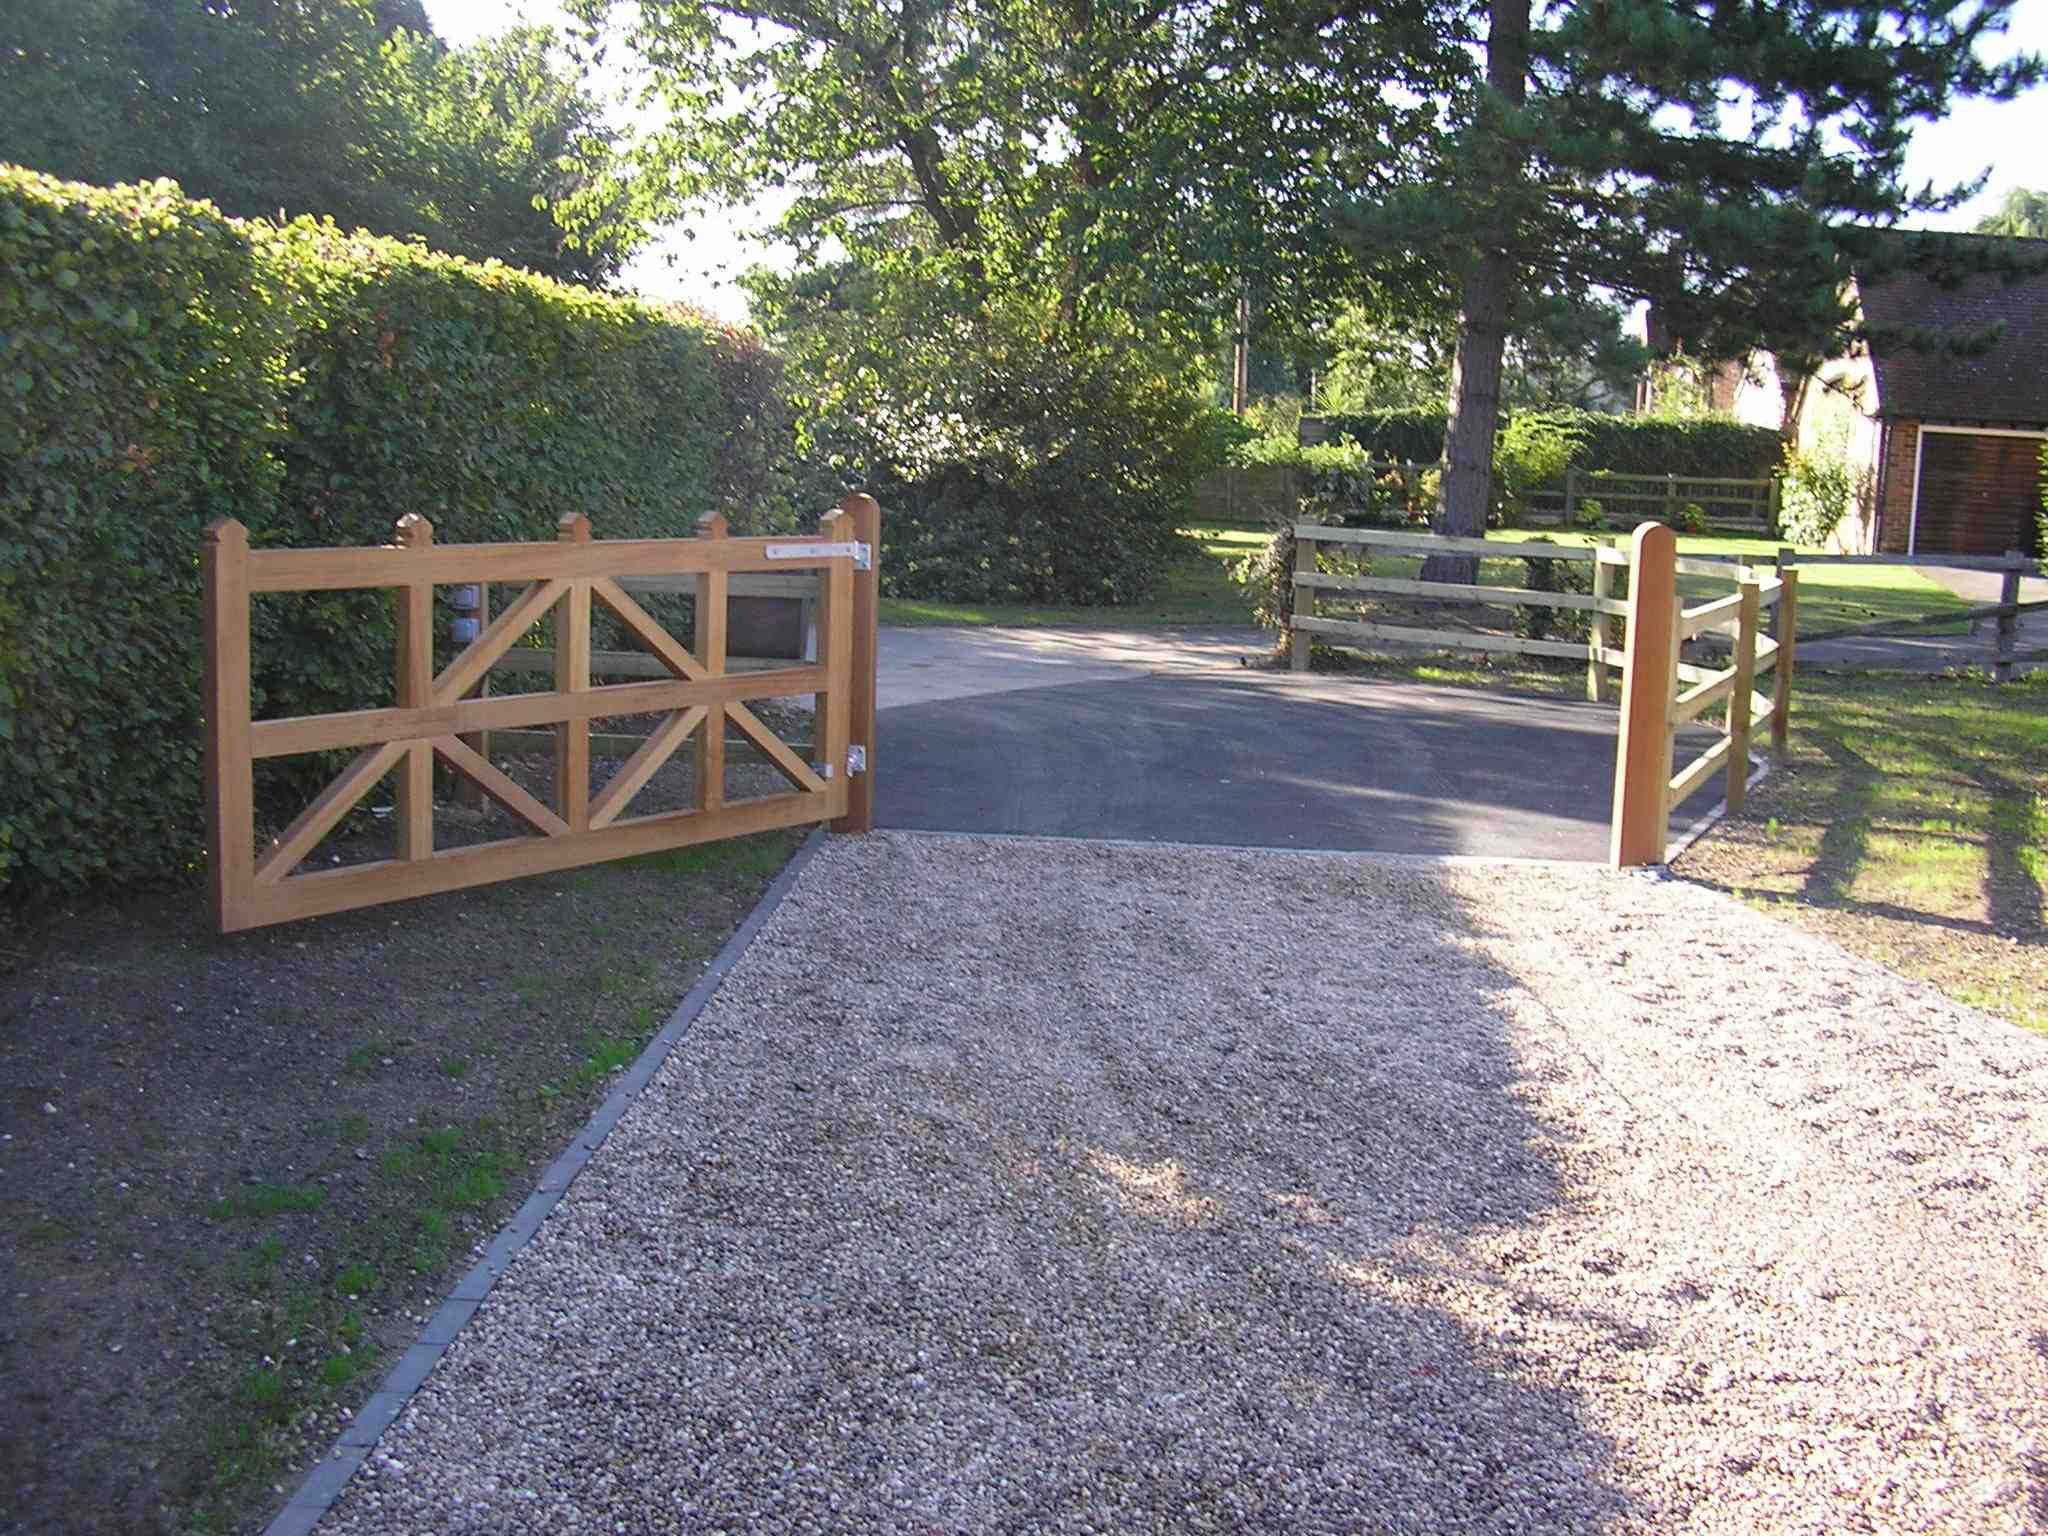 Portfolio eamples of our new fencing and gates company service in Derby 9